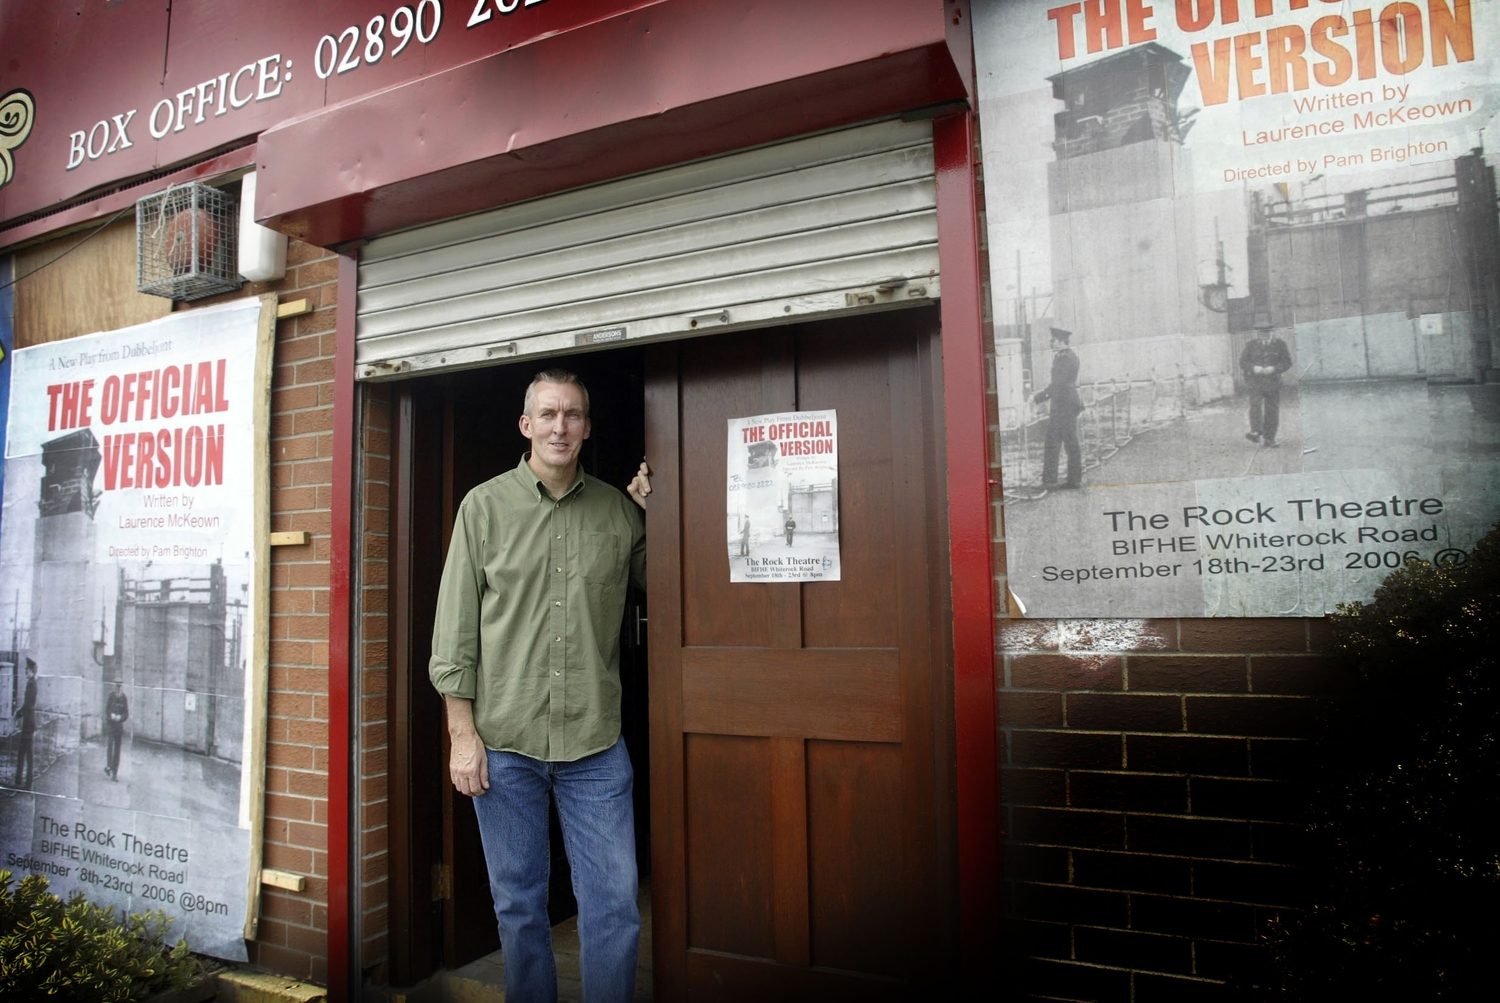 Former hunger striker Laurence McKeown is a playwright who has written about Maze/Long Kesh